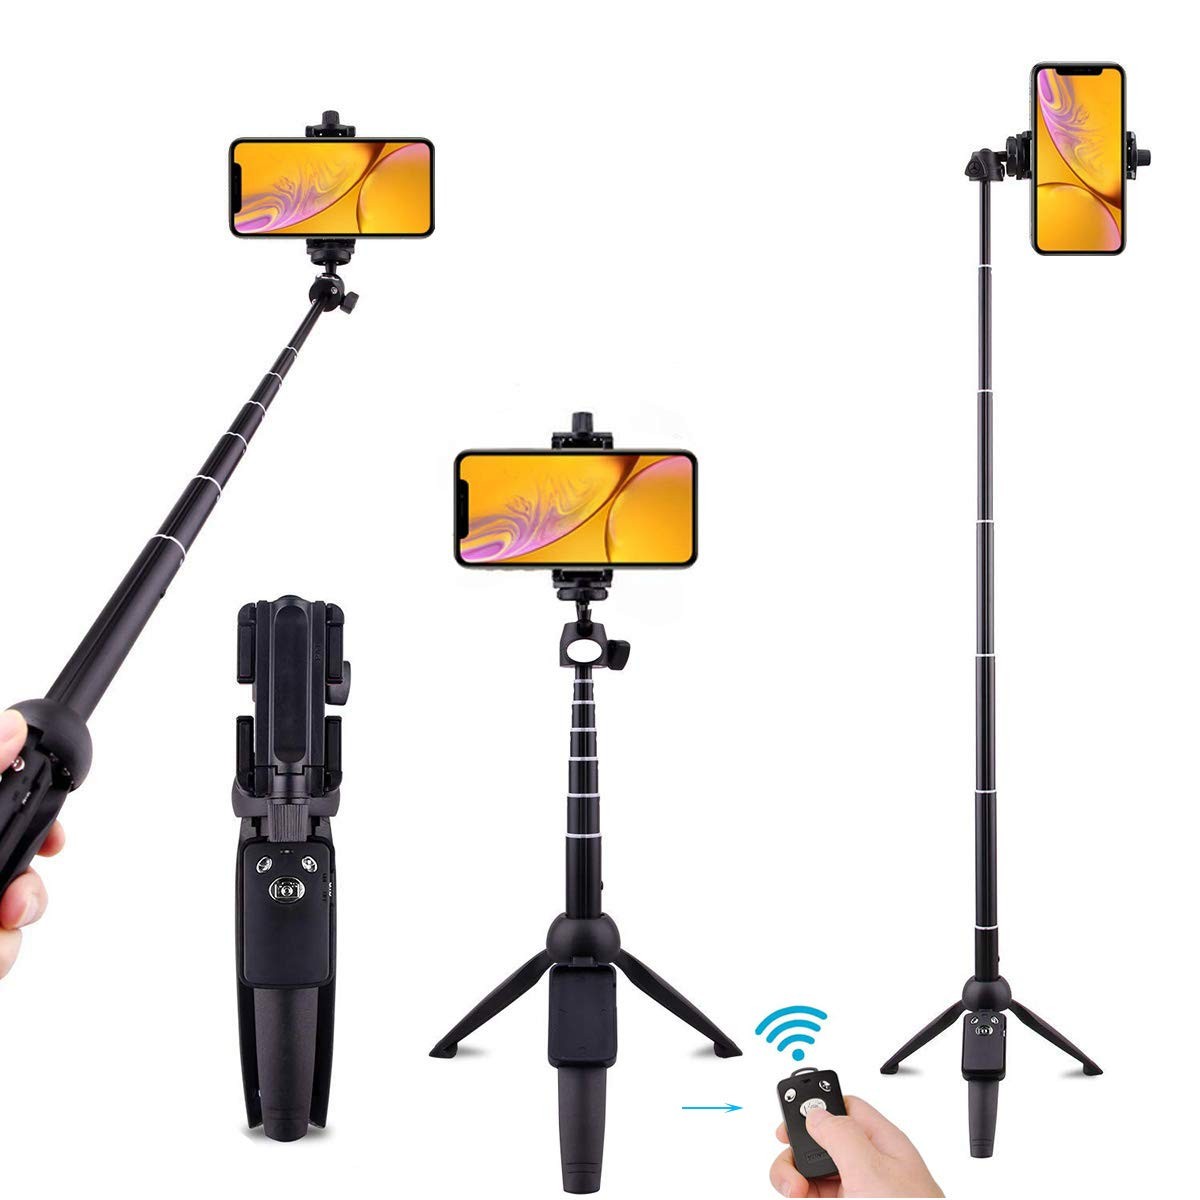 Selfie Stick Bluetooth,All-in-One Professional Cell Phone Tripod Stand 40 Inch Extendable with Wireless Remote Camera Shutter Compatible with iPhone Samsung iOS Android Huawei and More